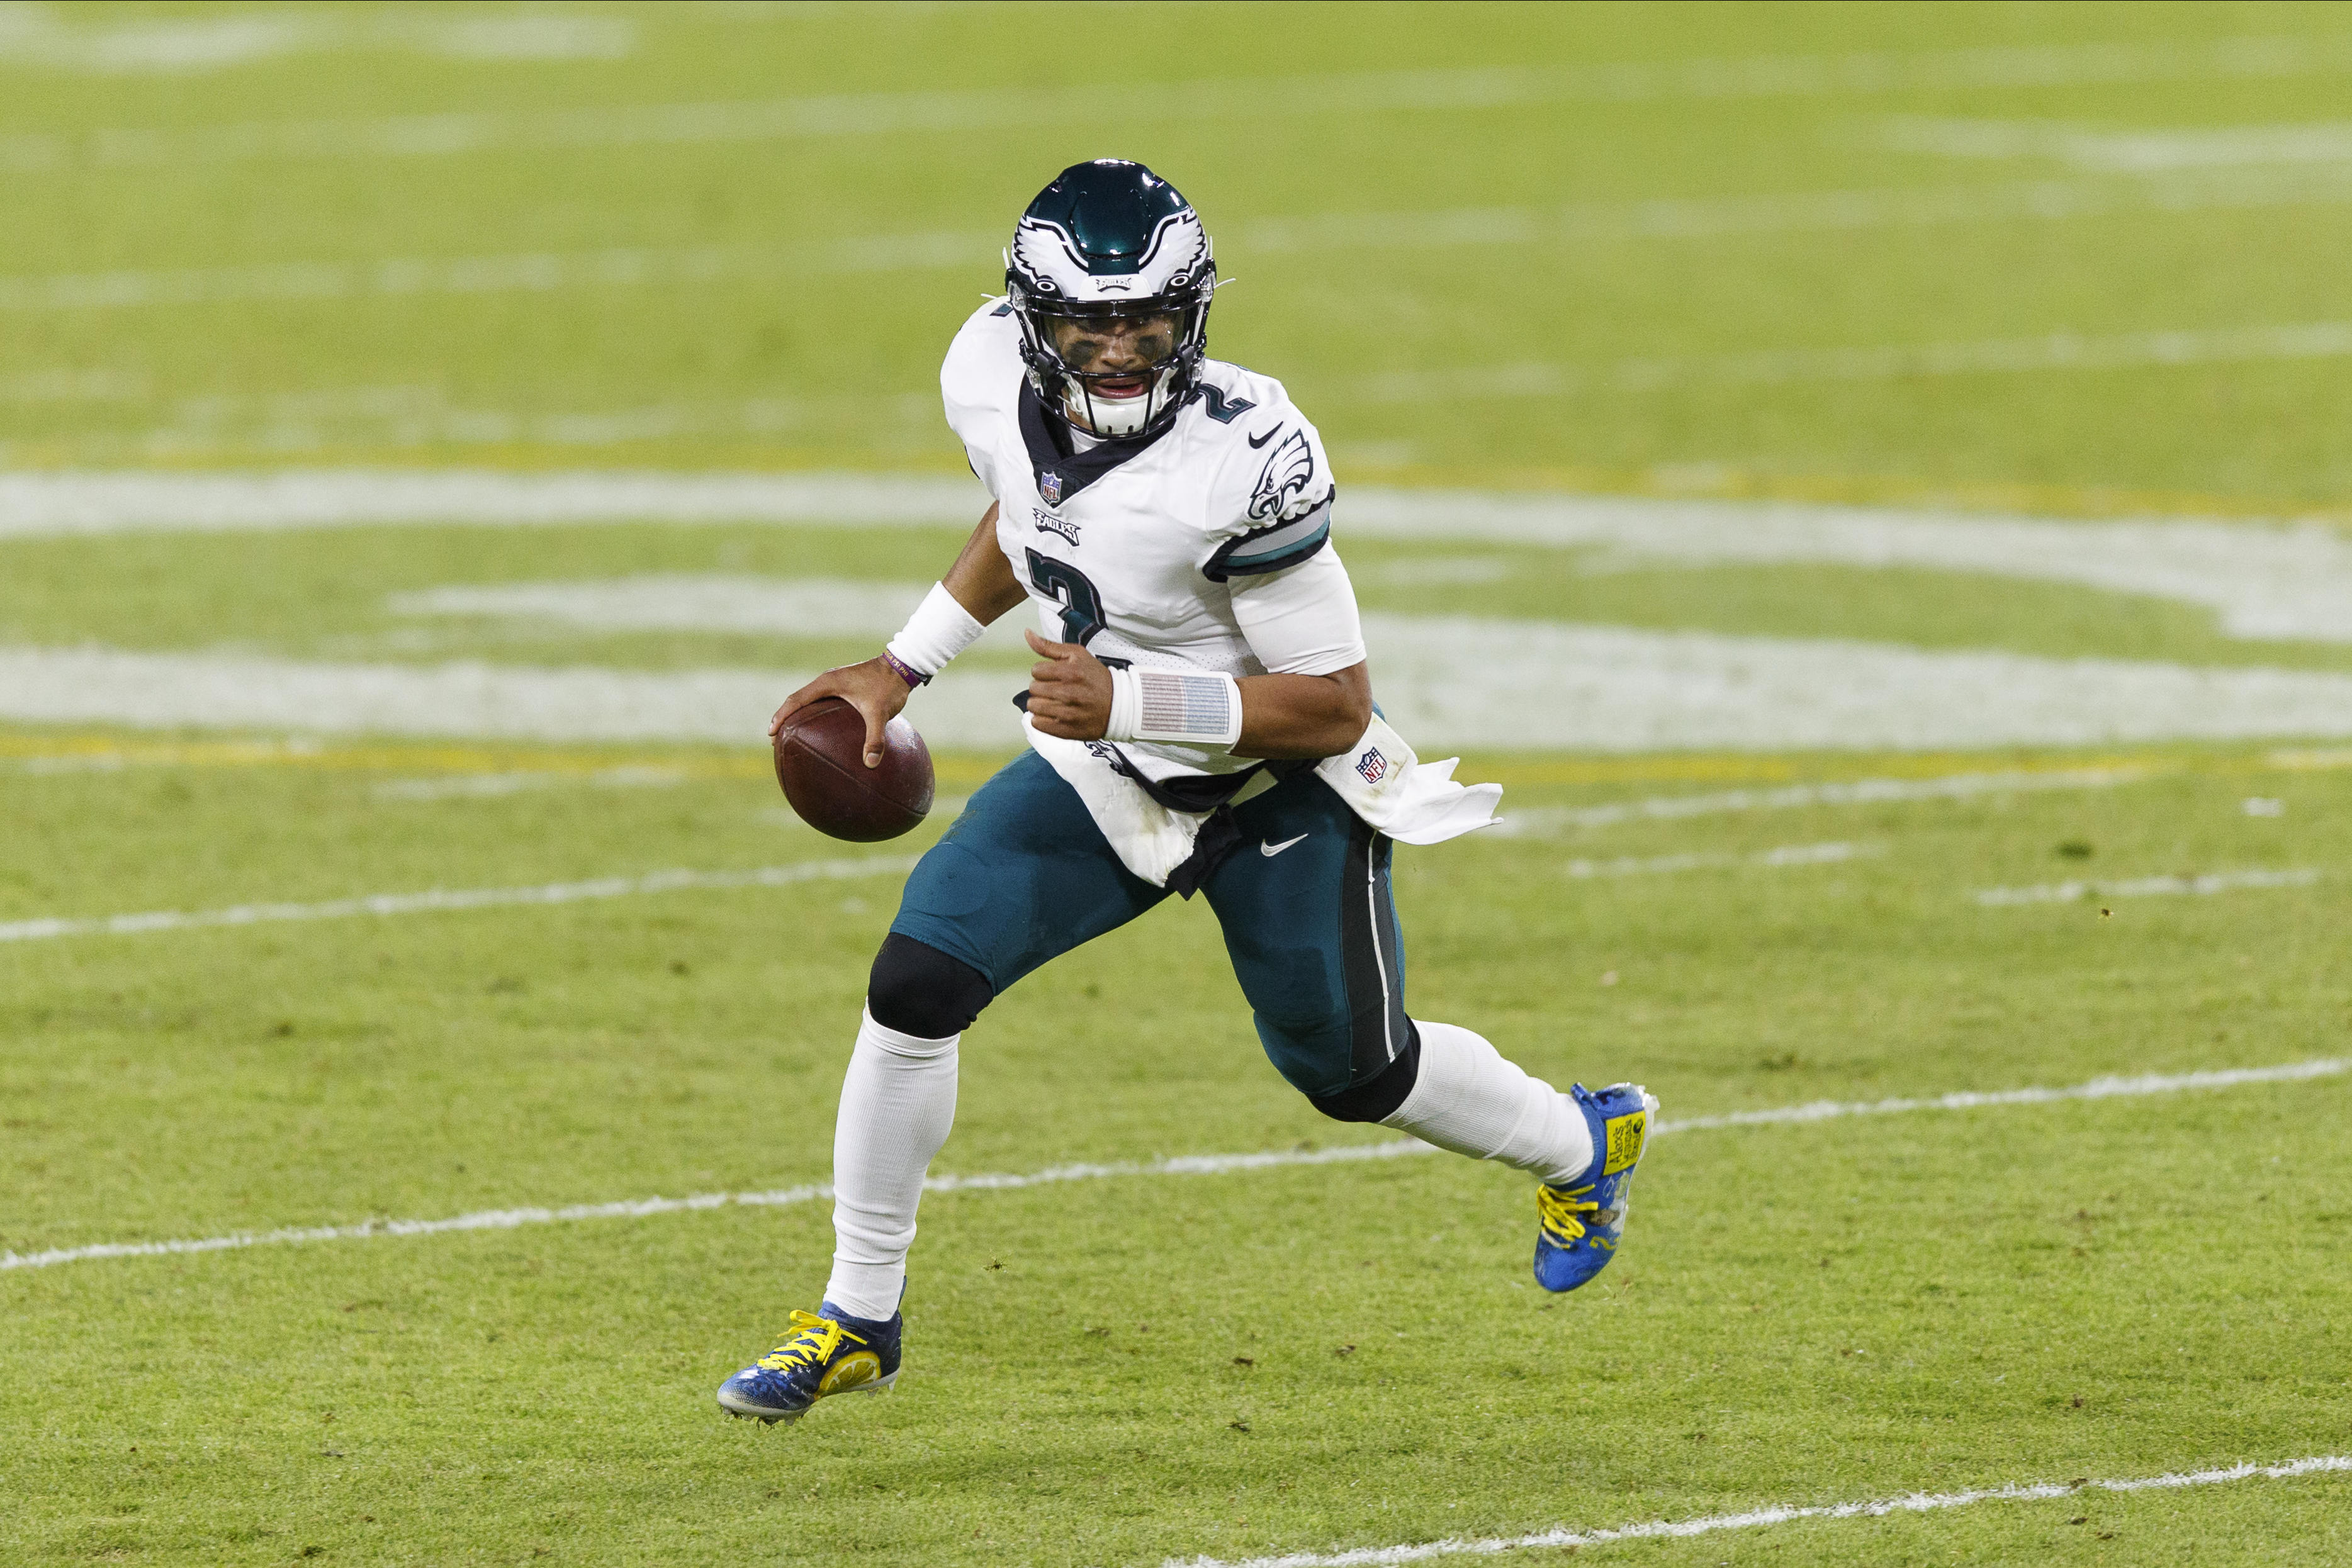 Betting trends nfl week 14 2021 sports betting sites uk